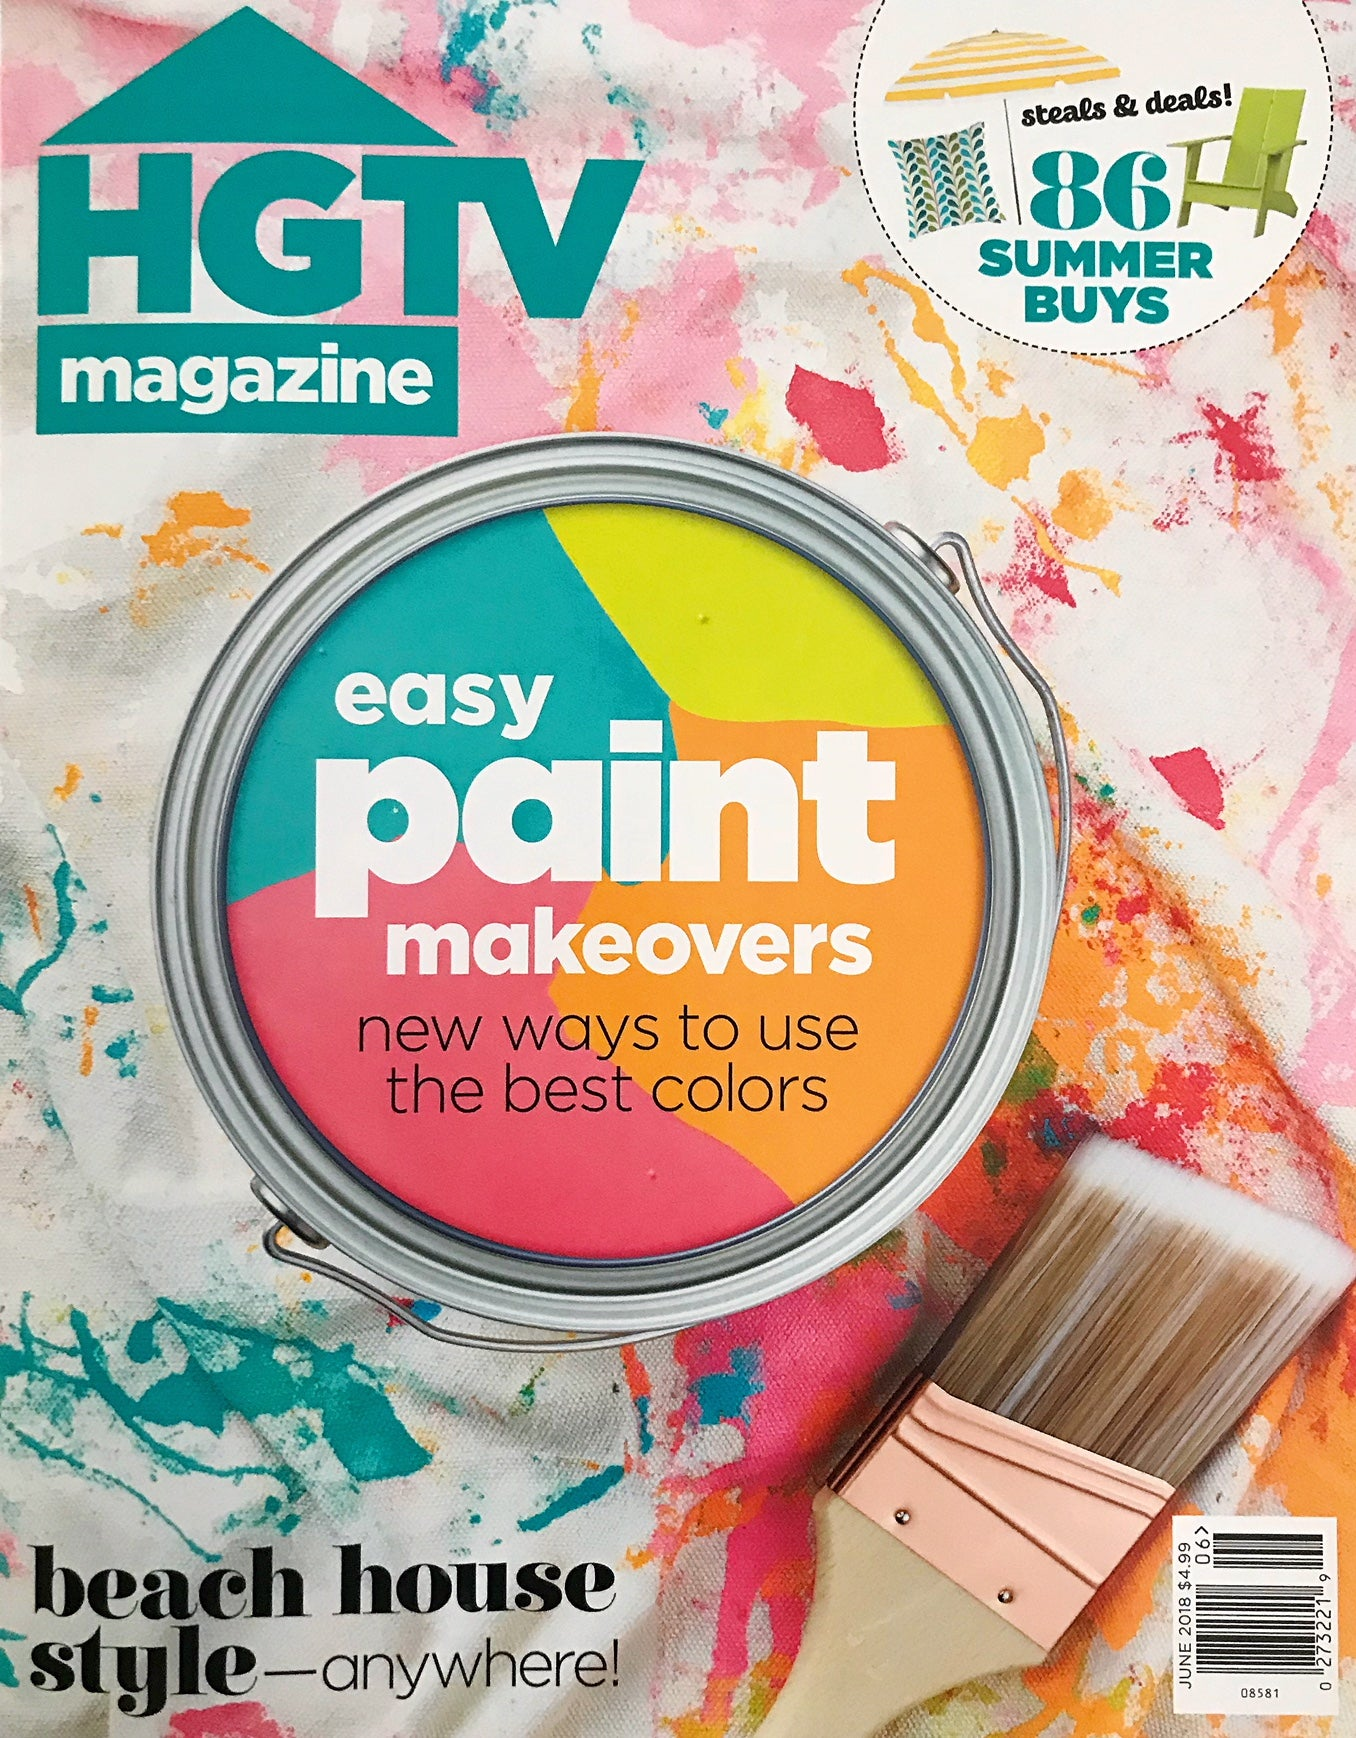 HGTV Magazine Cover | Hot off the Press